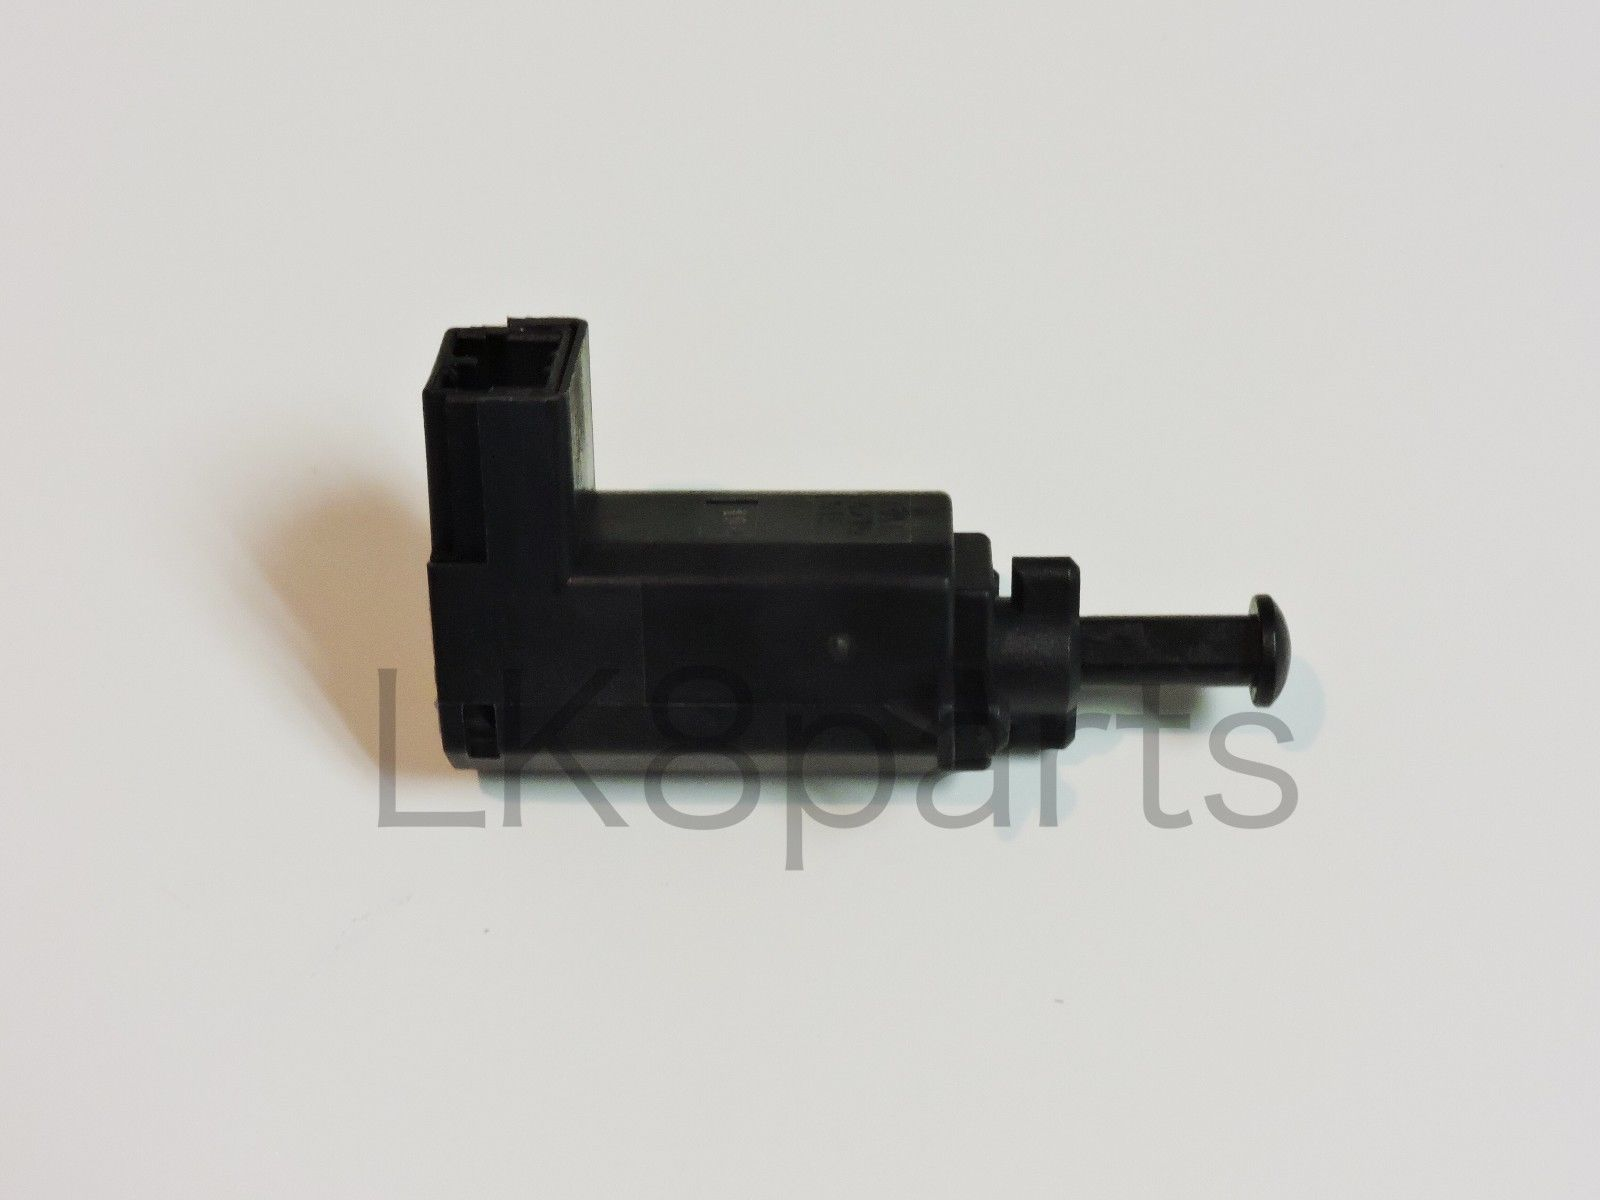 LAND ROVER DISCOVERY 2 1999-2004 BRAKE STOP PEDAL LIGHT SWITCH ASSY # XKB100170